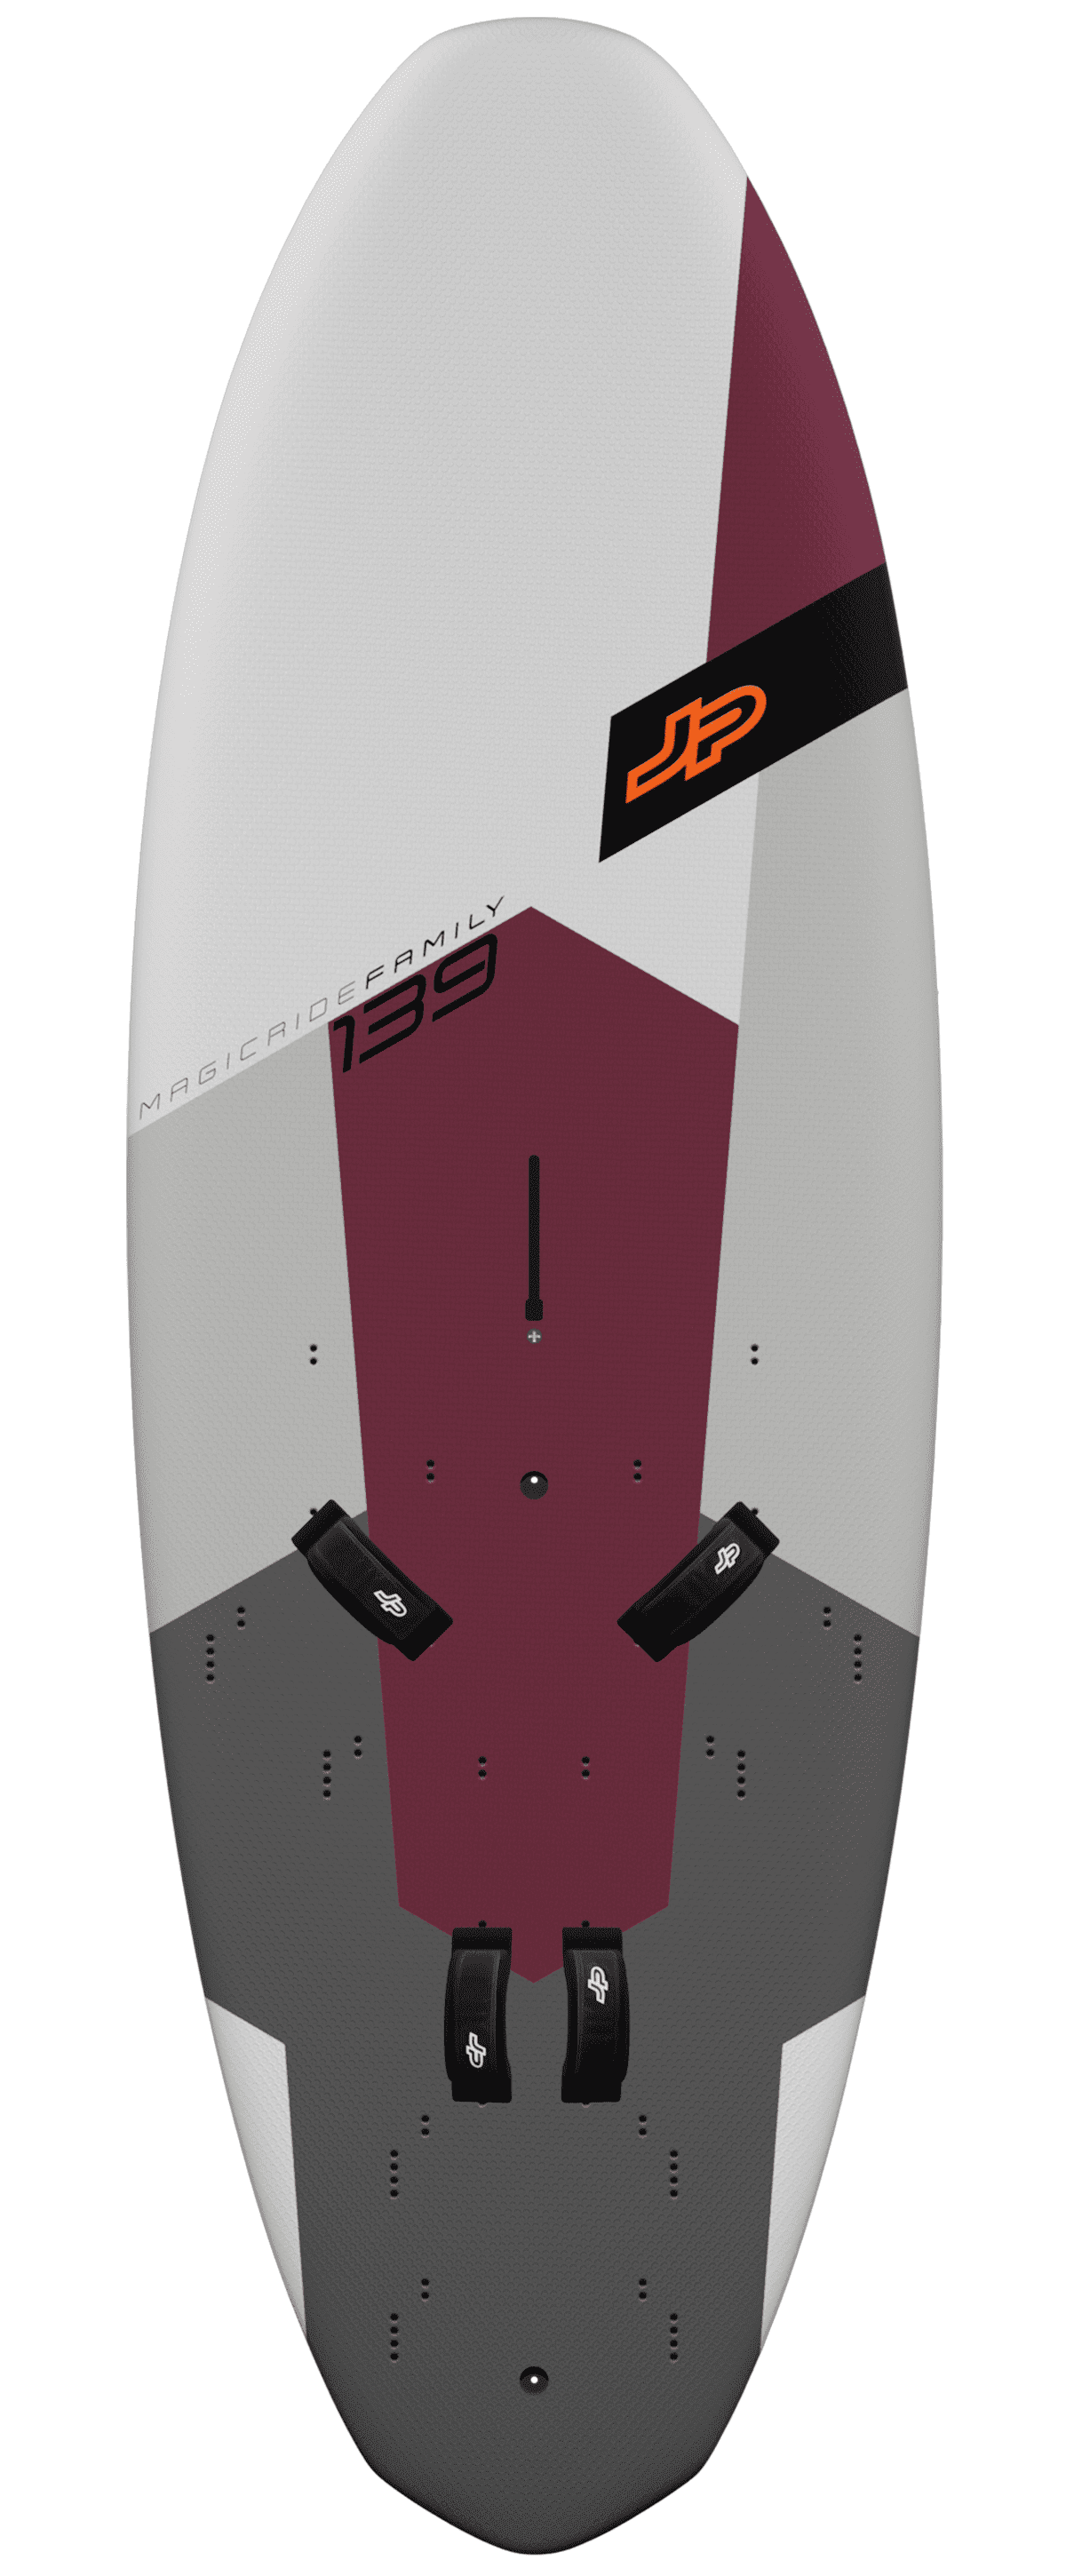 JP Magic Ride EVA Familie Freeride Board 2020